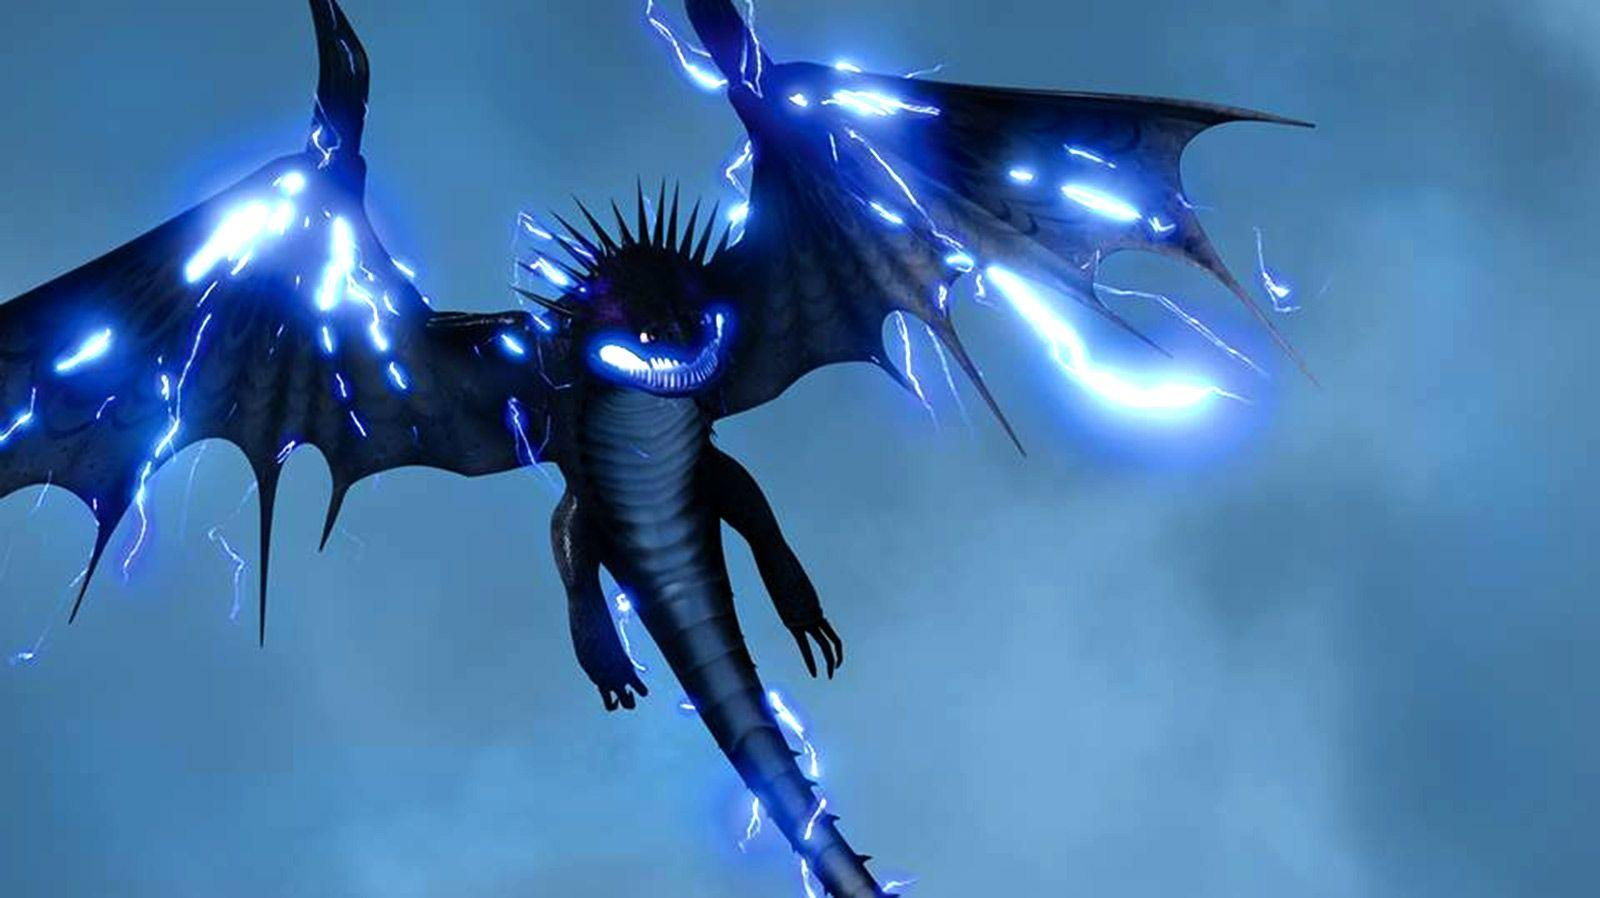 How To Train Your Dragon 3 Wallpapers Wallpaper Cave